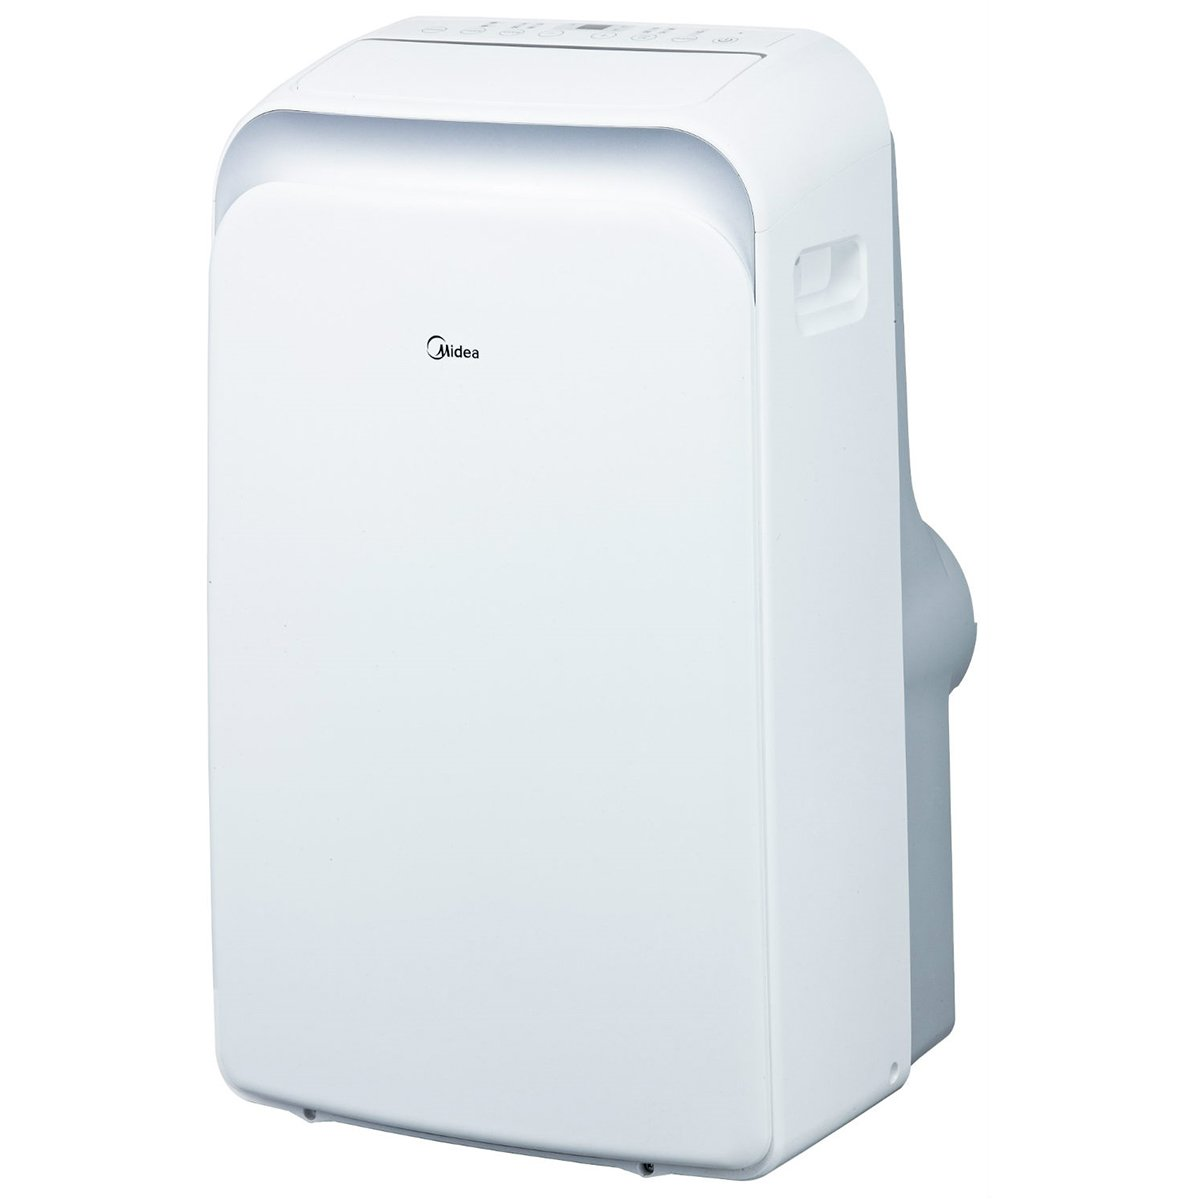 Midea MPPD16CRN1 4.7Kw Portable Air Conditioner - FREE Delivery & Price Match* image